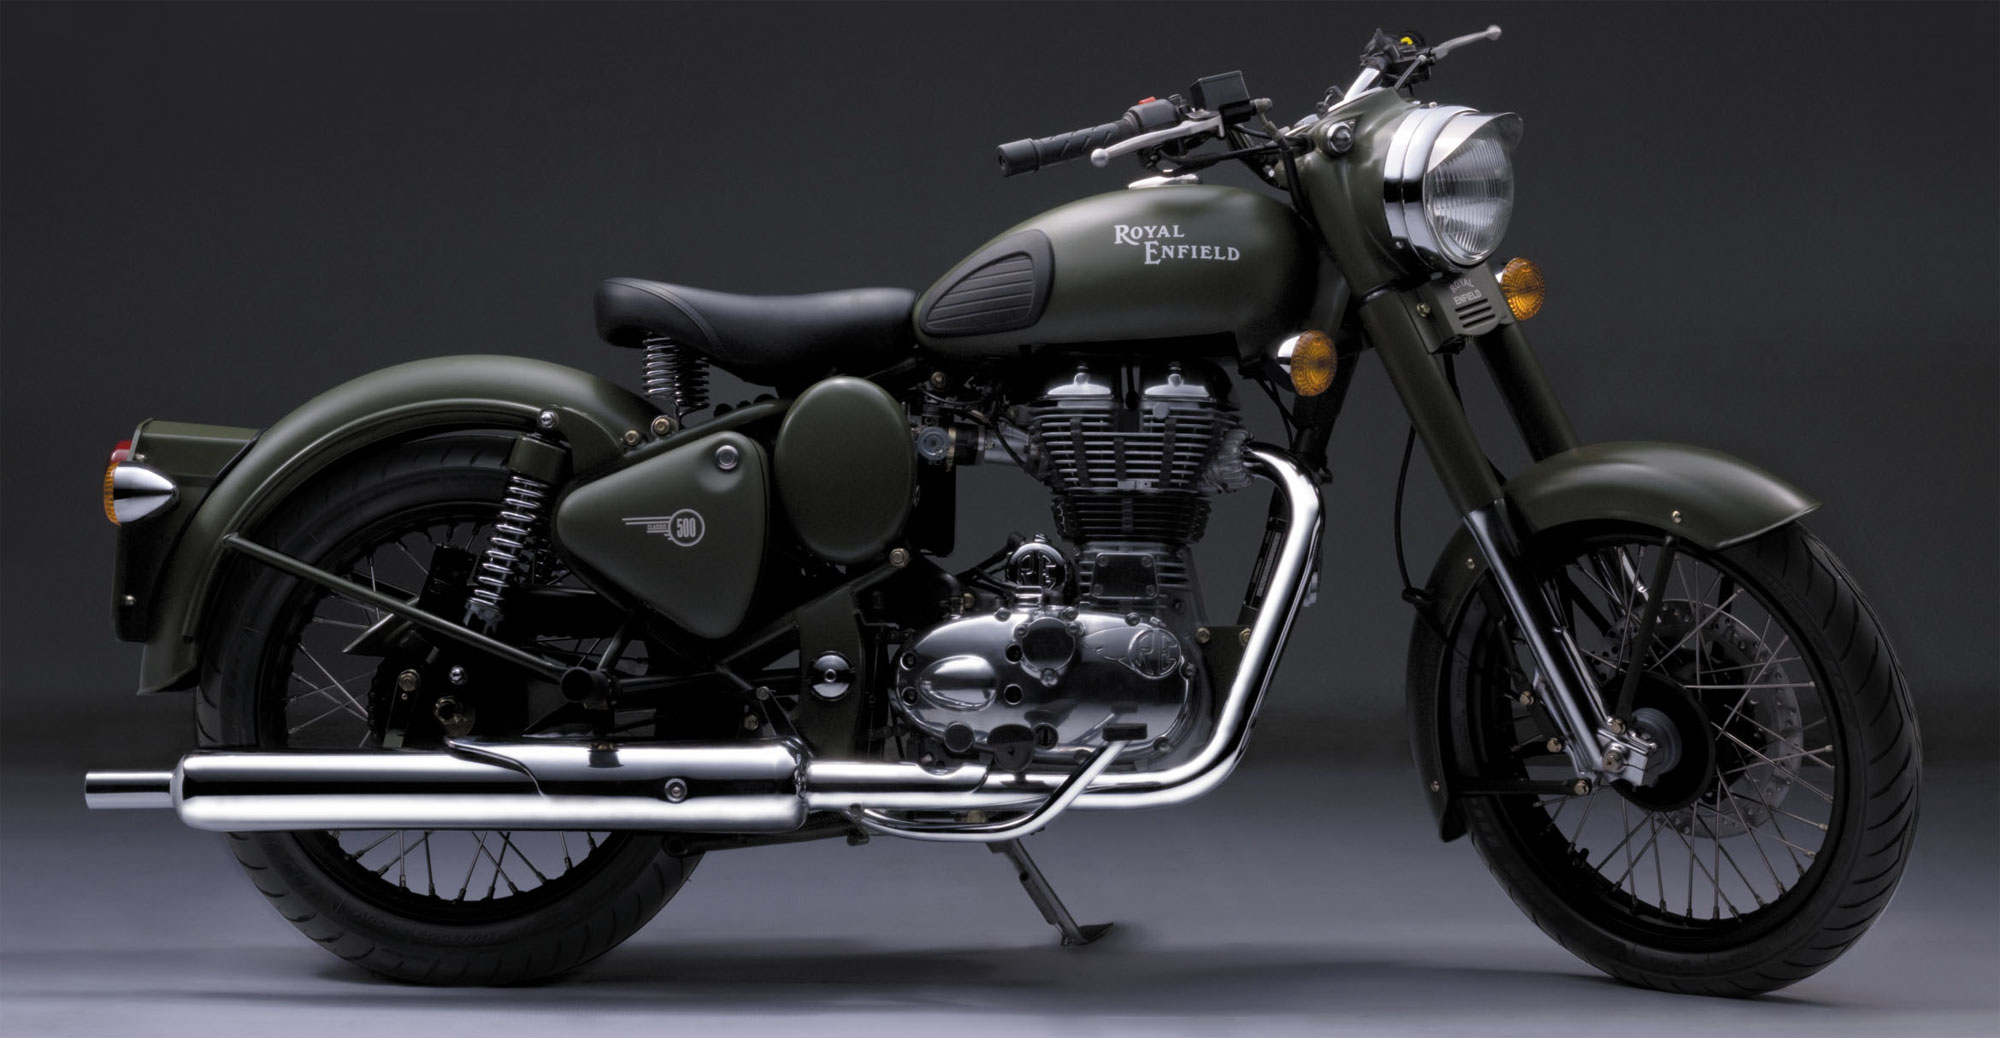 Royal Enfield Bullet 500 Army 2006 images #123595